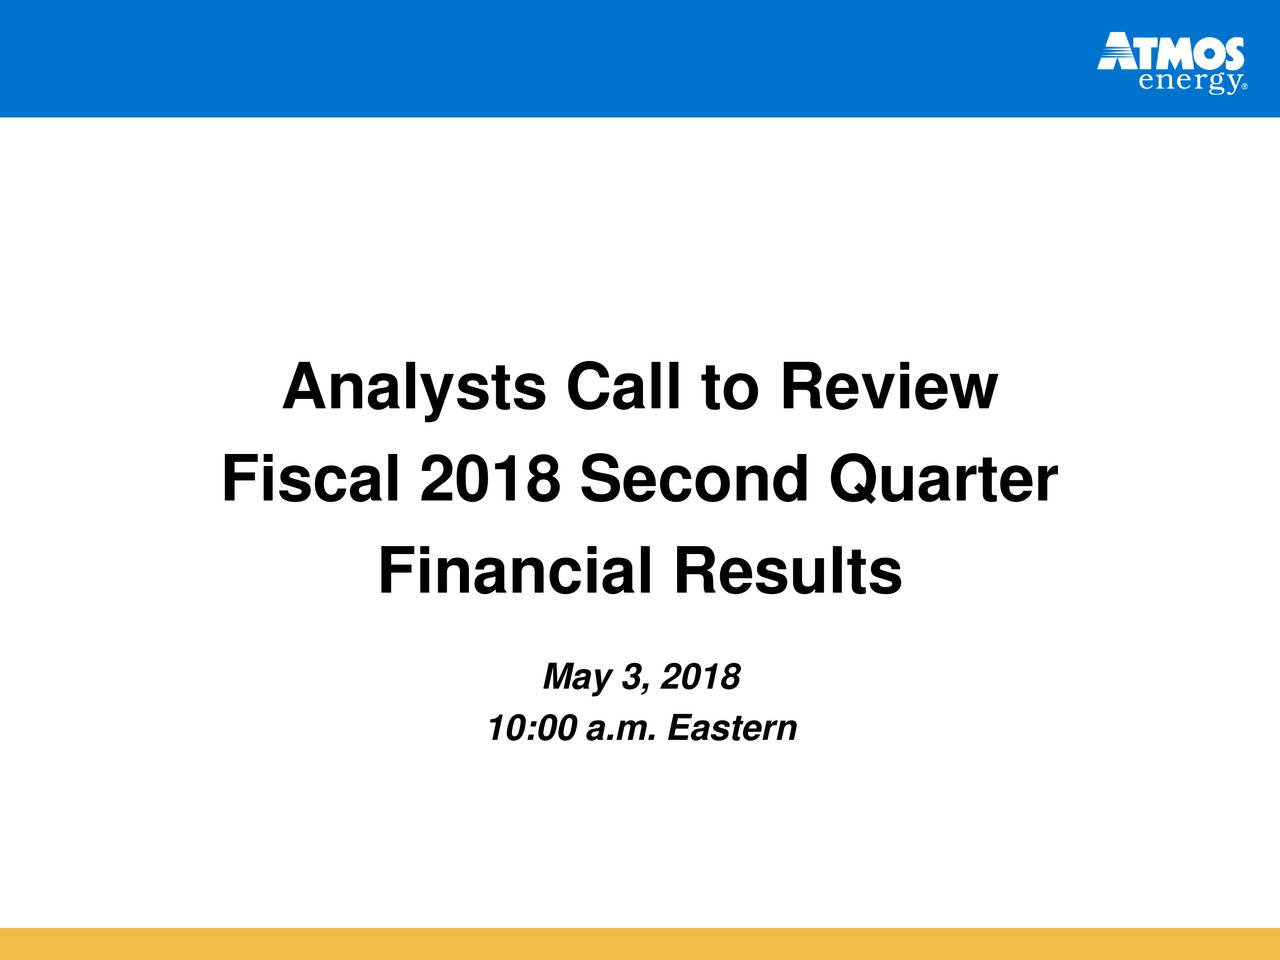 Fiscal 2018 Second Quarter Financial Results May 3, 2018 10:00 a.m. Eastern